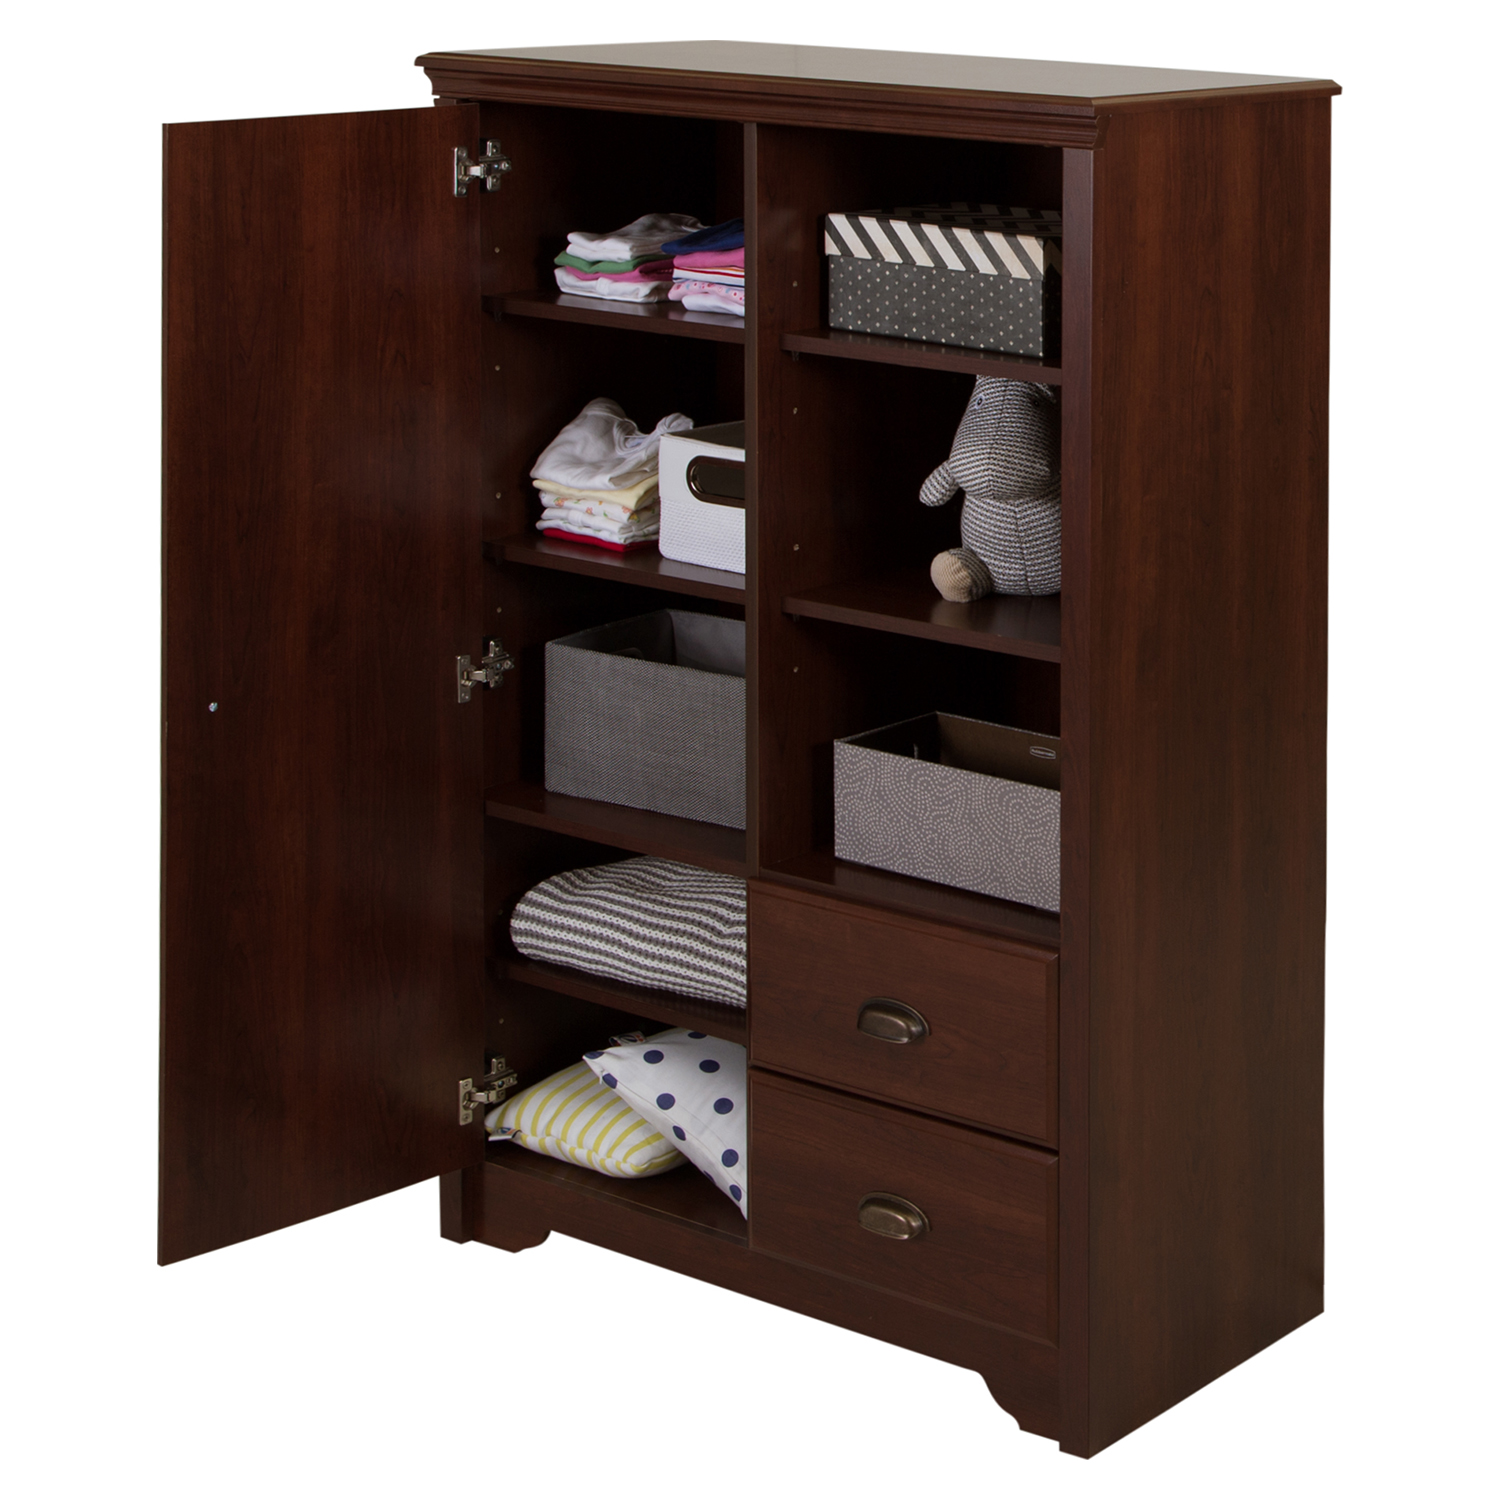 Fundy Tide Changing Table and Armoire - Royal Cherry - SS-9022B2